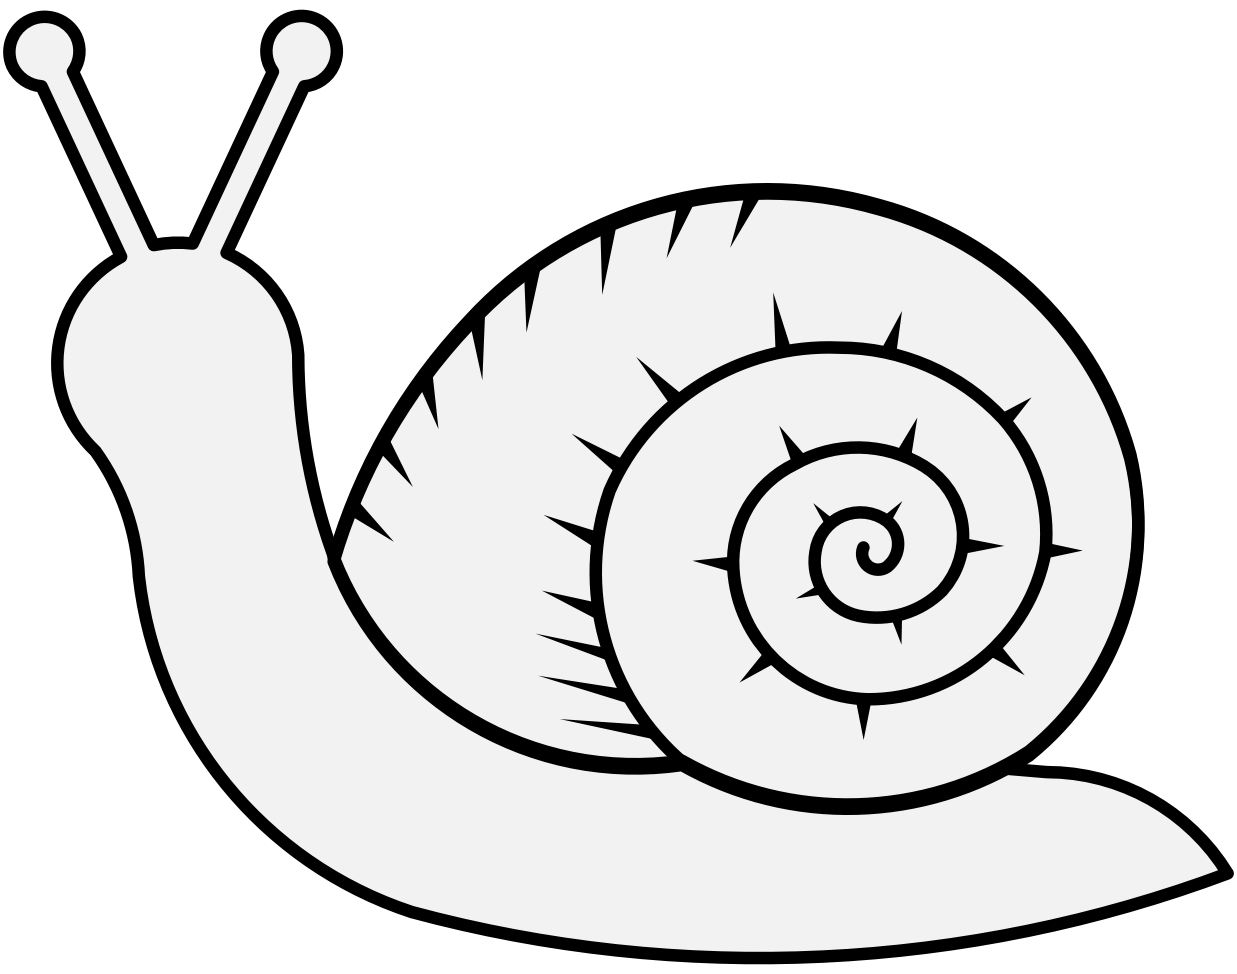 cartoon snail snail line drawing free download on clipartmag snail cartoon